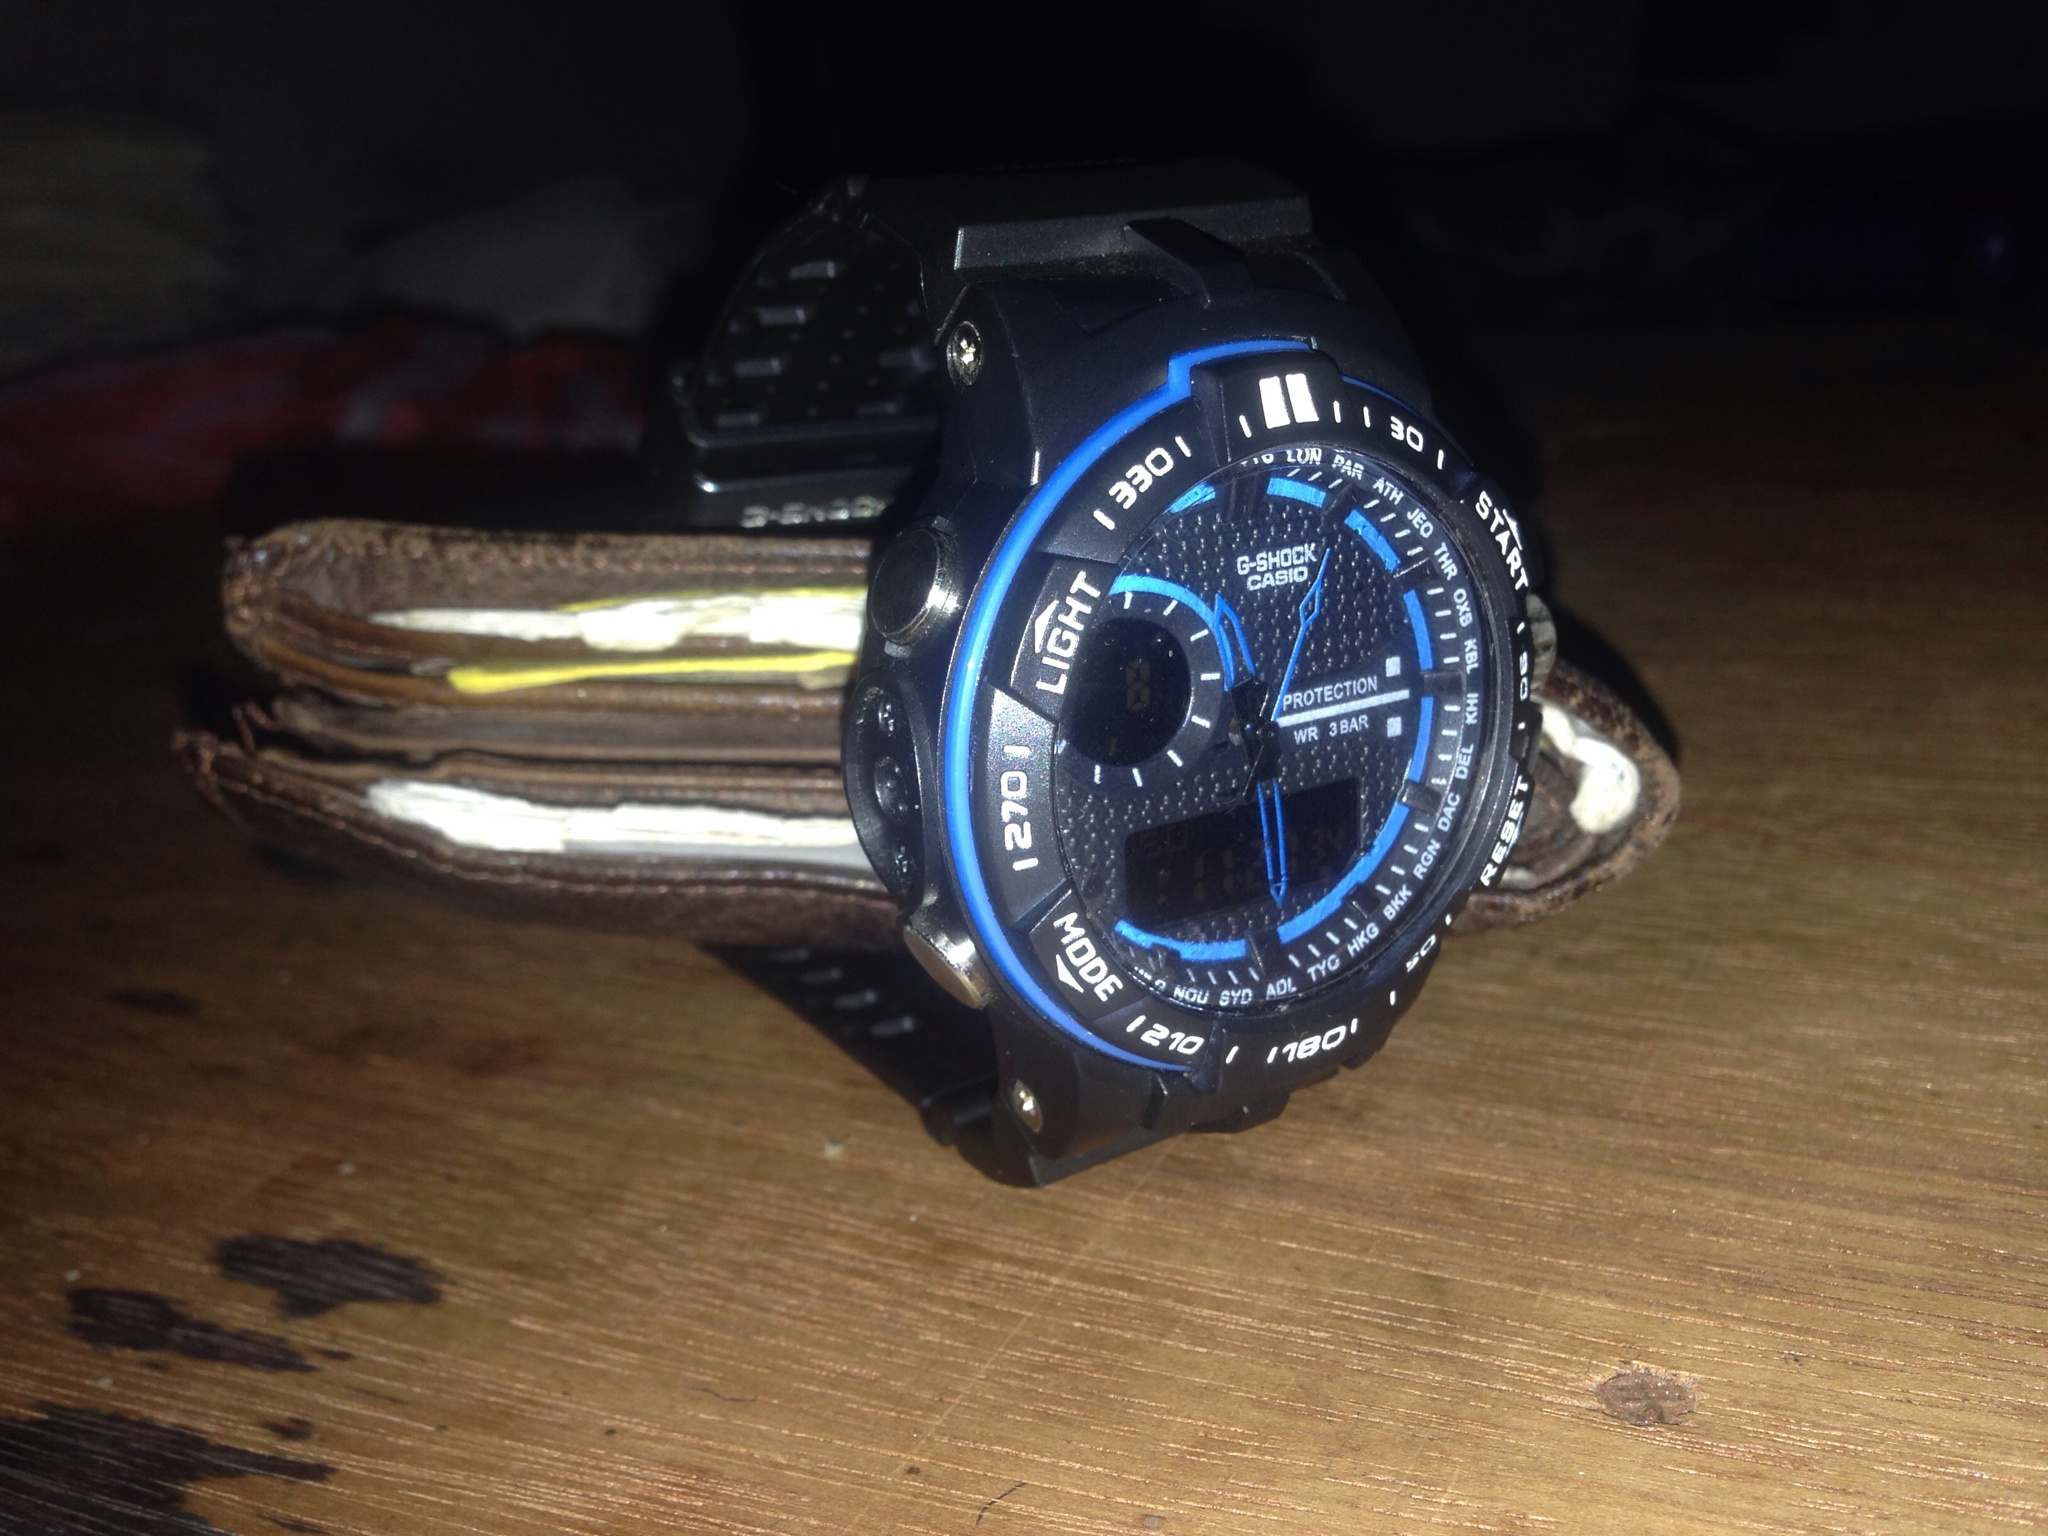 G shock watch by Mohamed Ajmeer